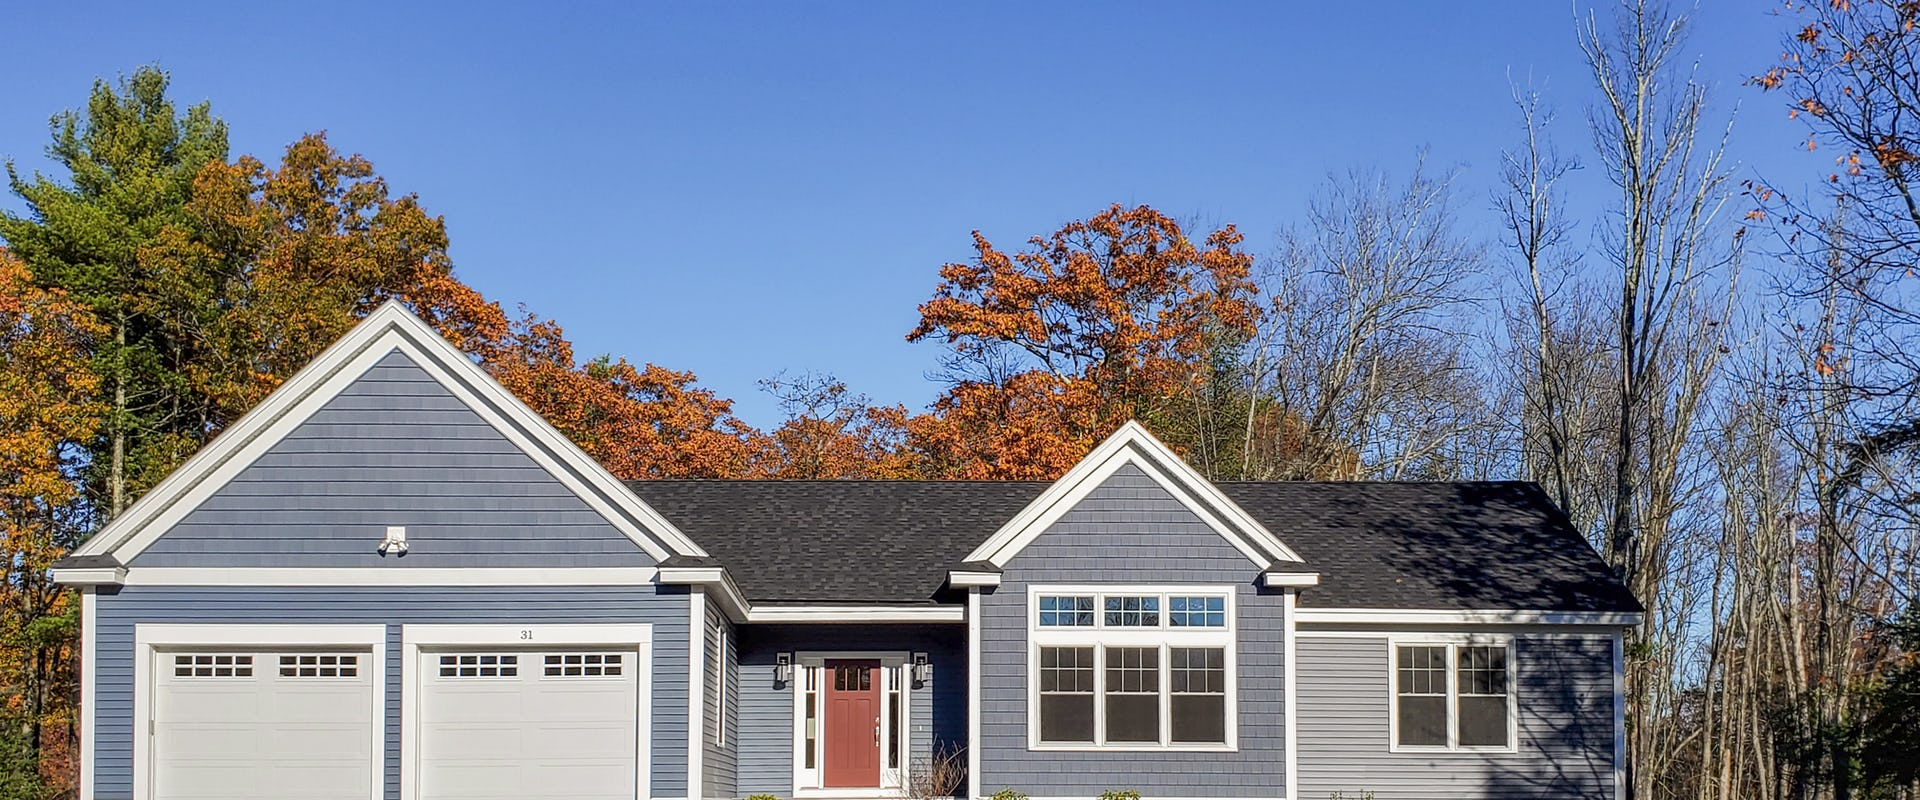 blue ranch style home in fall